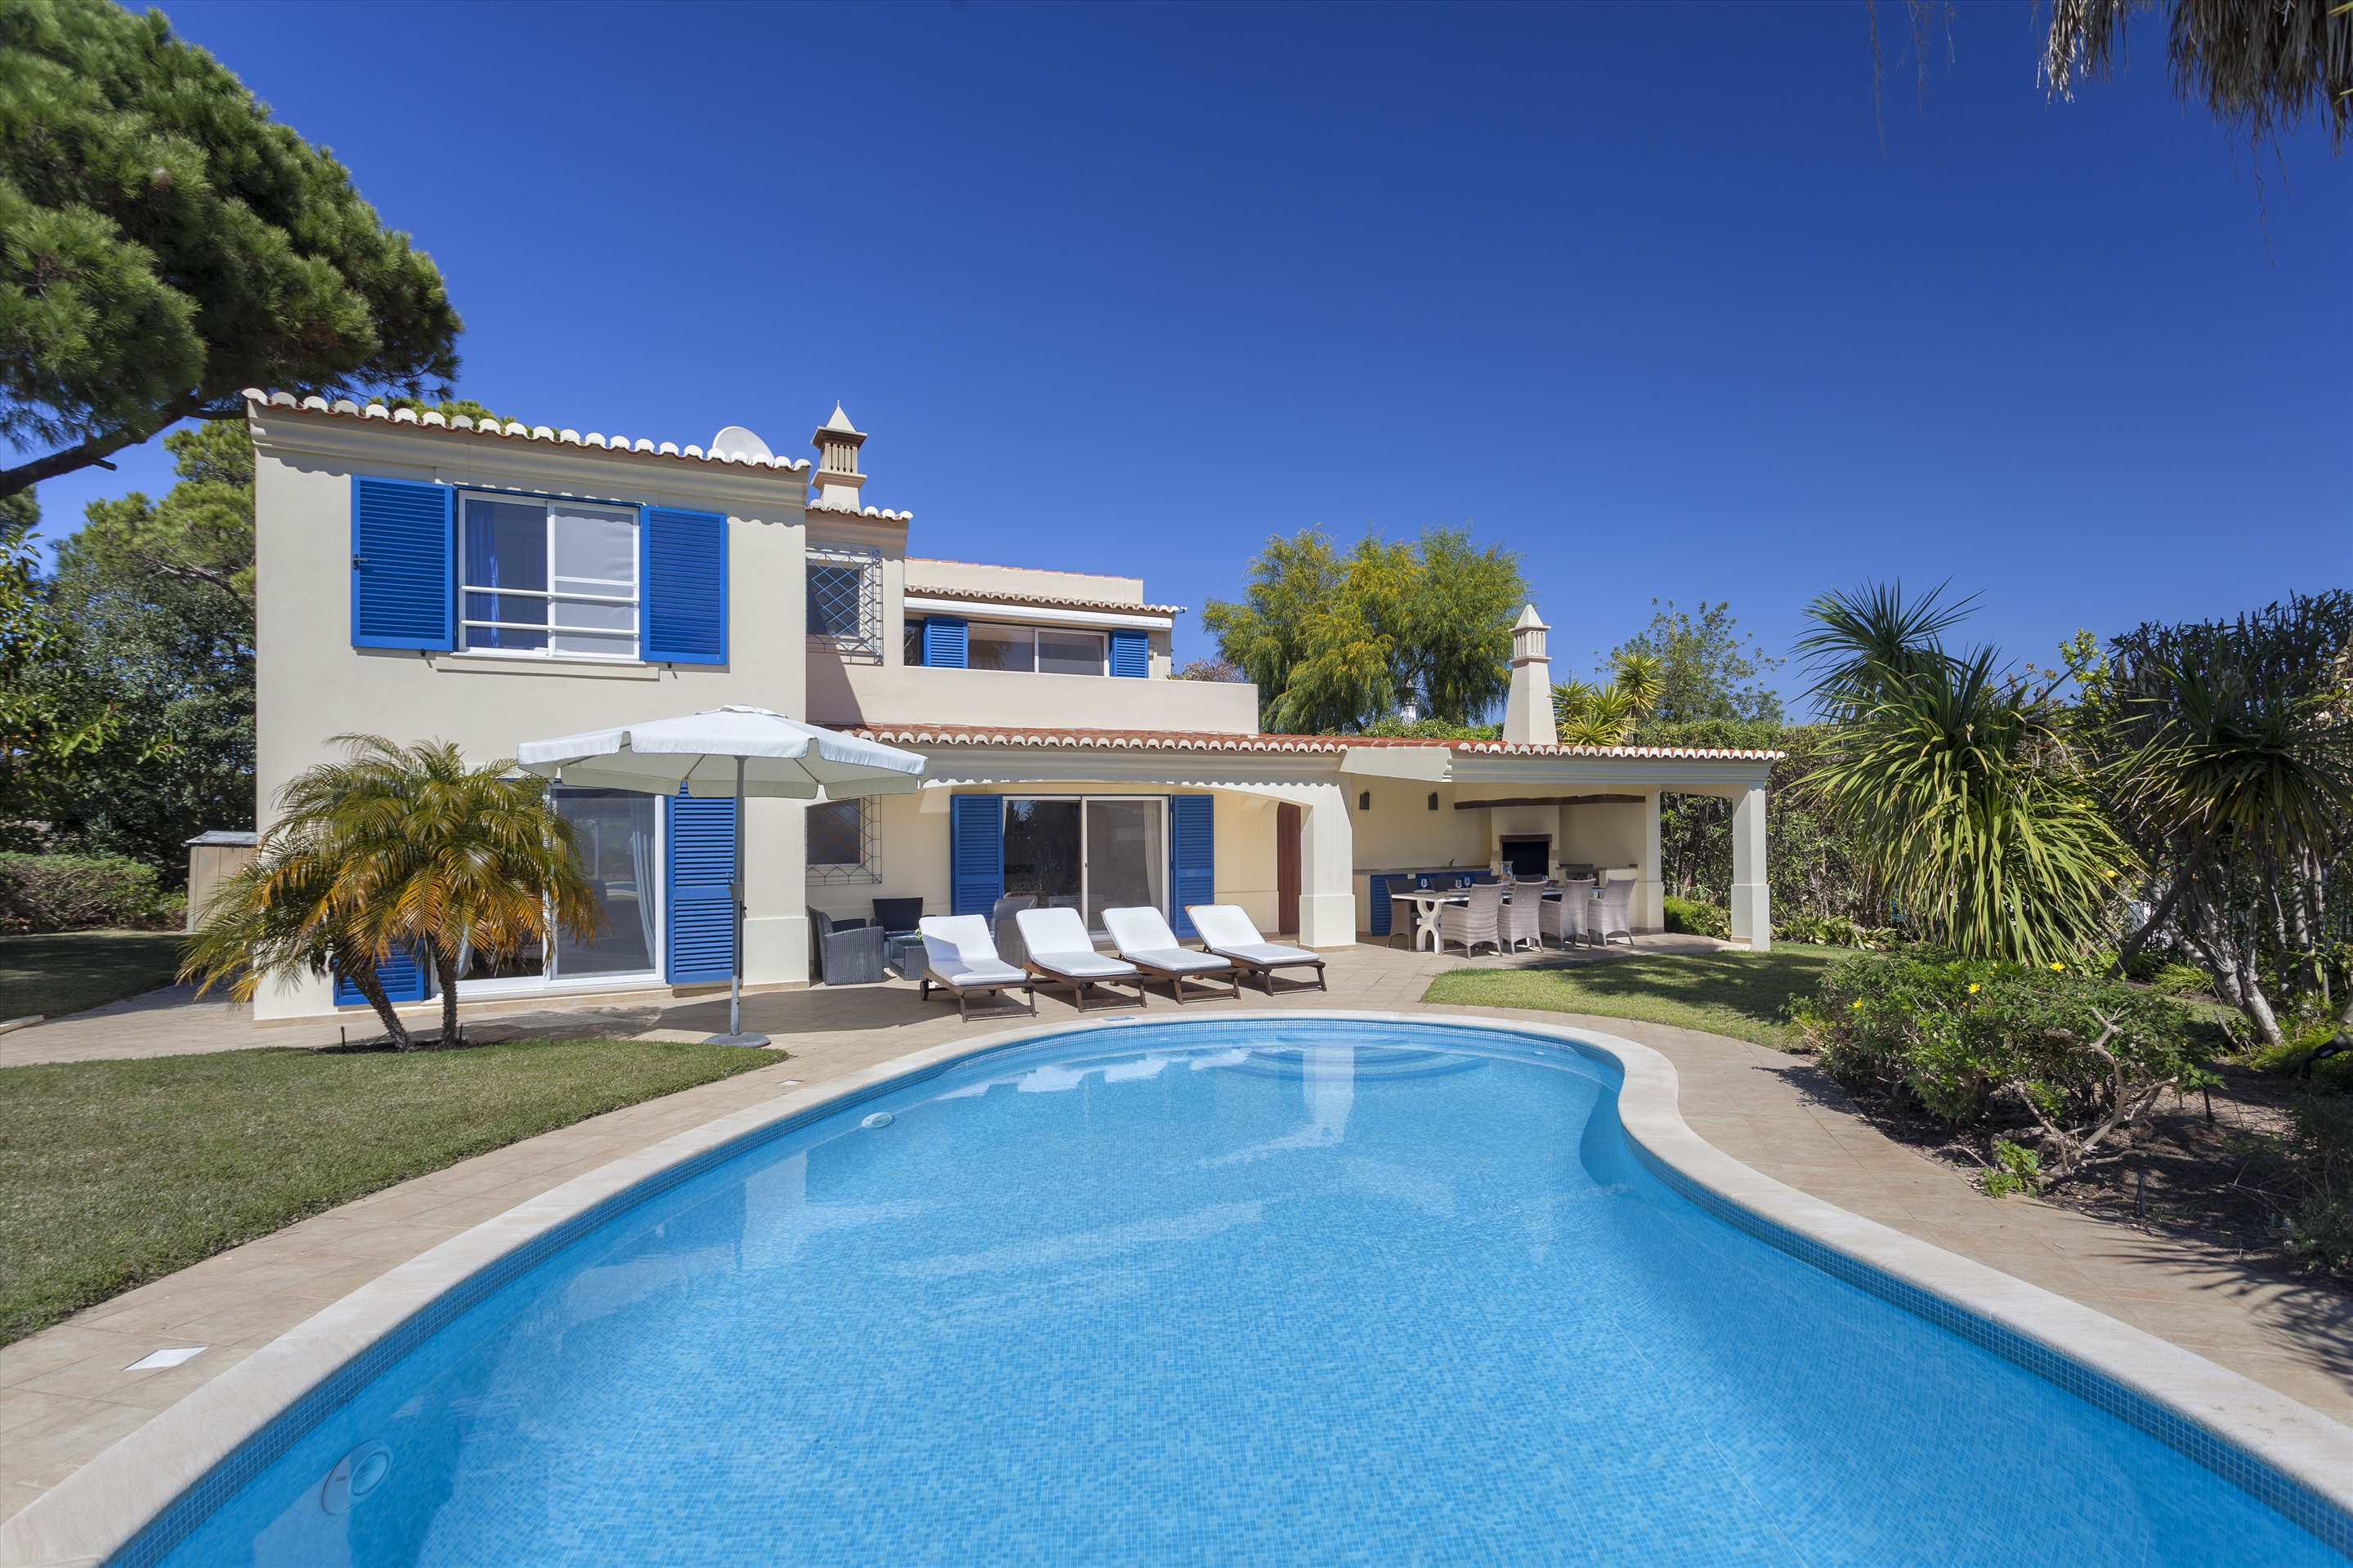 Villa Longa, 4 bedroom villa in Vale do Lobo, Algarve Photo #1